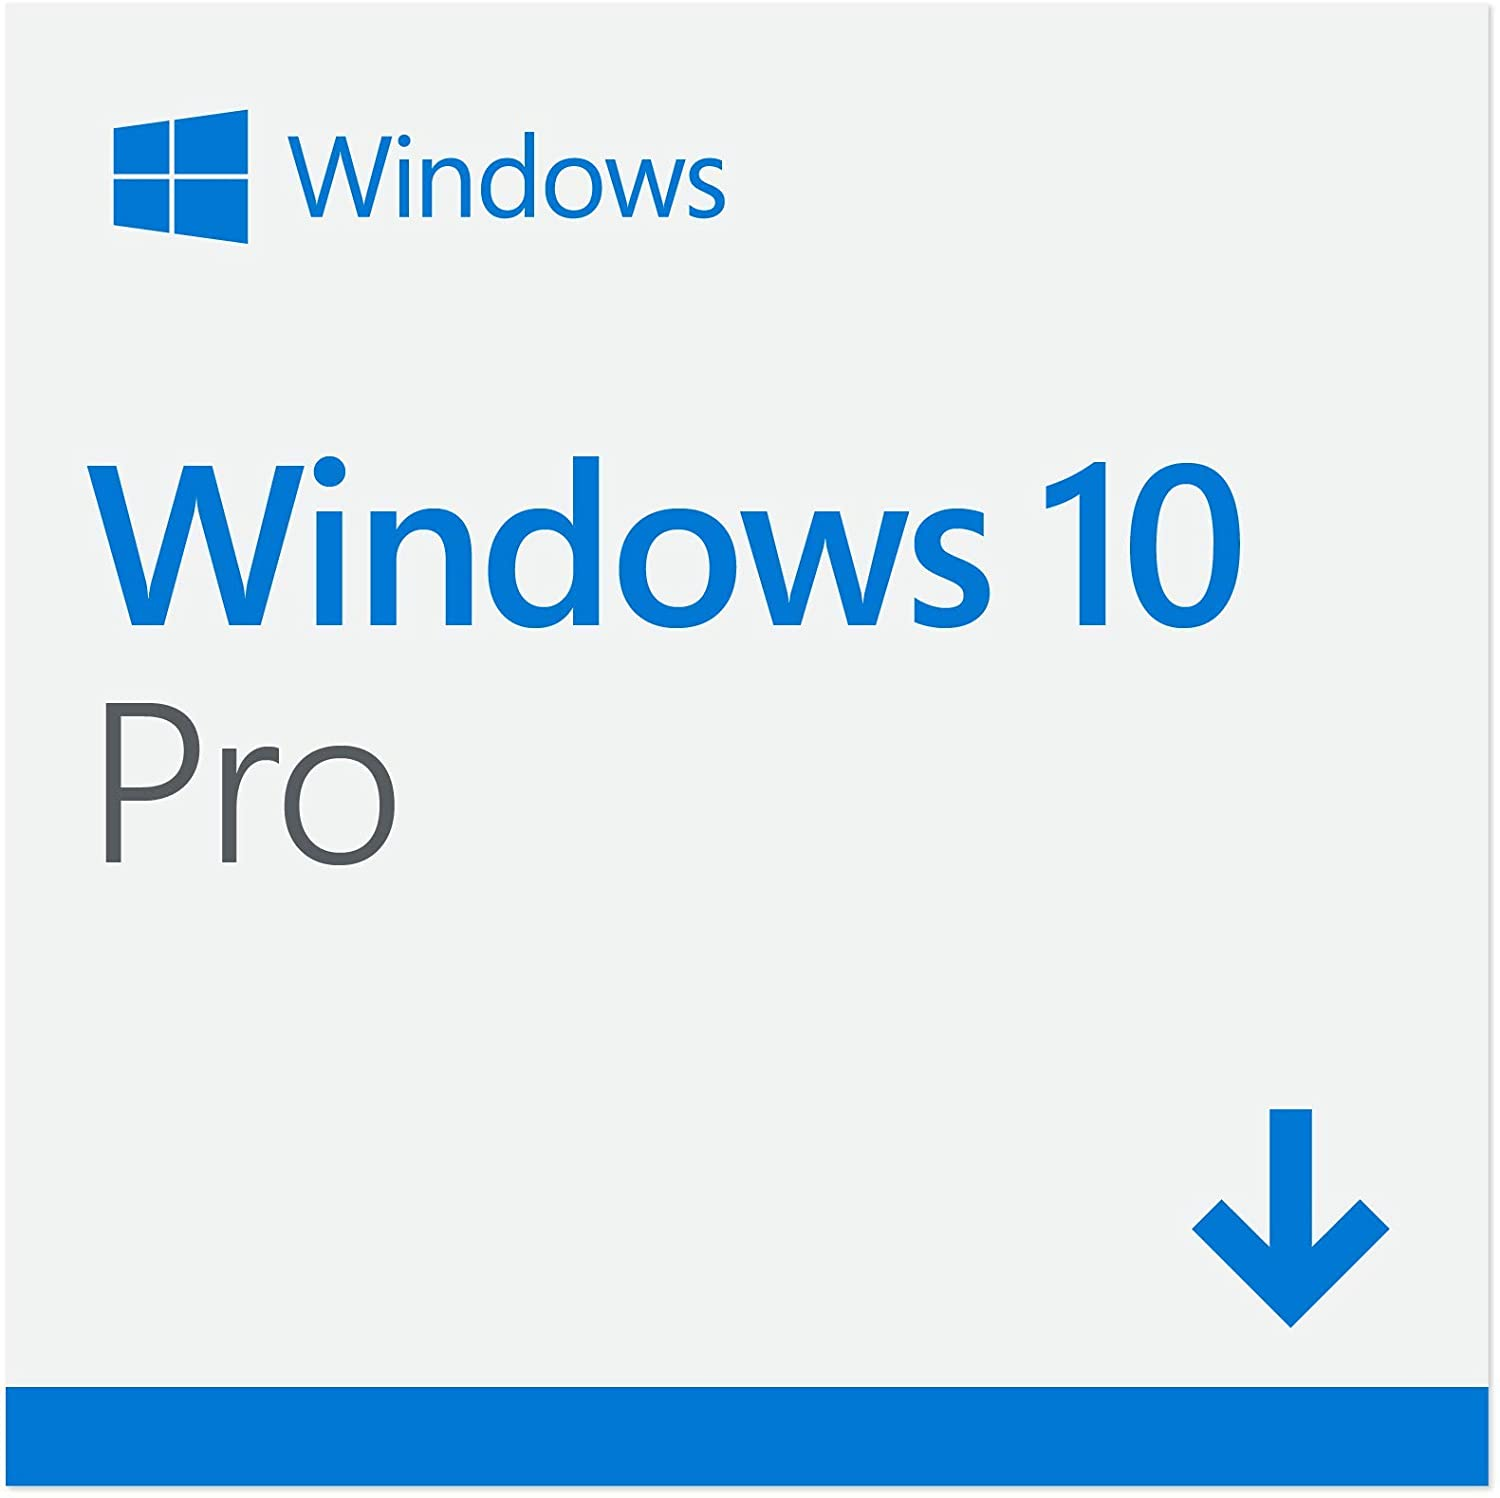 WINDOWS 10 PRO PROFESSIONAL GENUINE  LICENSE KEY     Instant Delivery 10 minute   Working on Microsoft Original Site|Data Cables|   - AliExpress